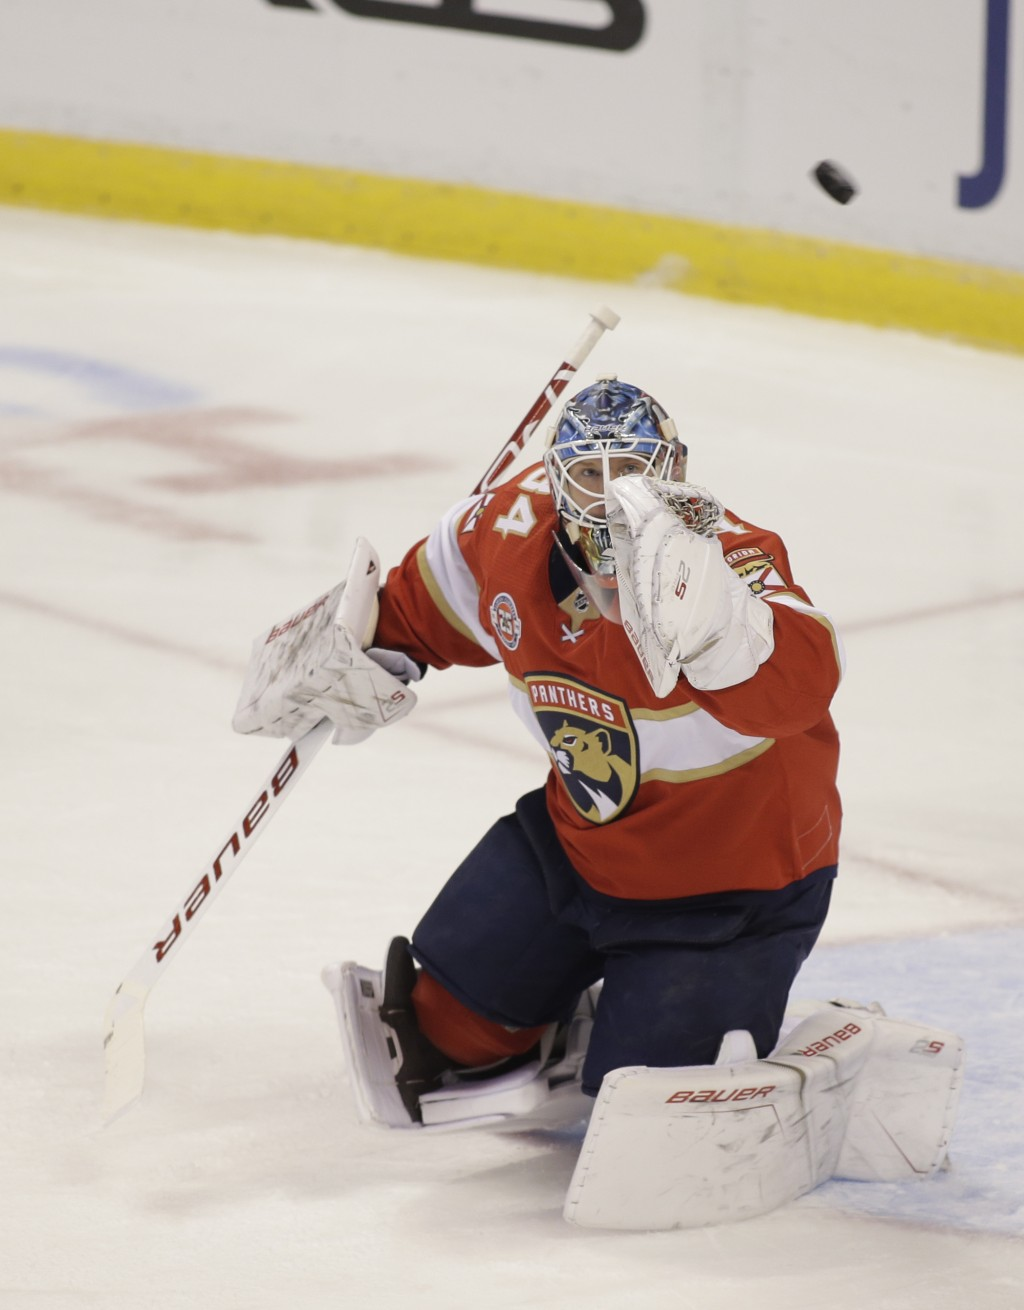 Florida Panthers goaltender James Reimer reaches for the puck during the first period of an NHL hockey game against the Columbus Blue Jackets on Thurs